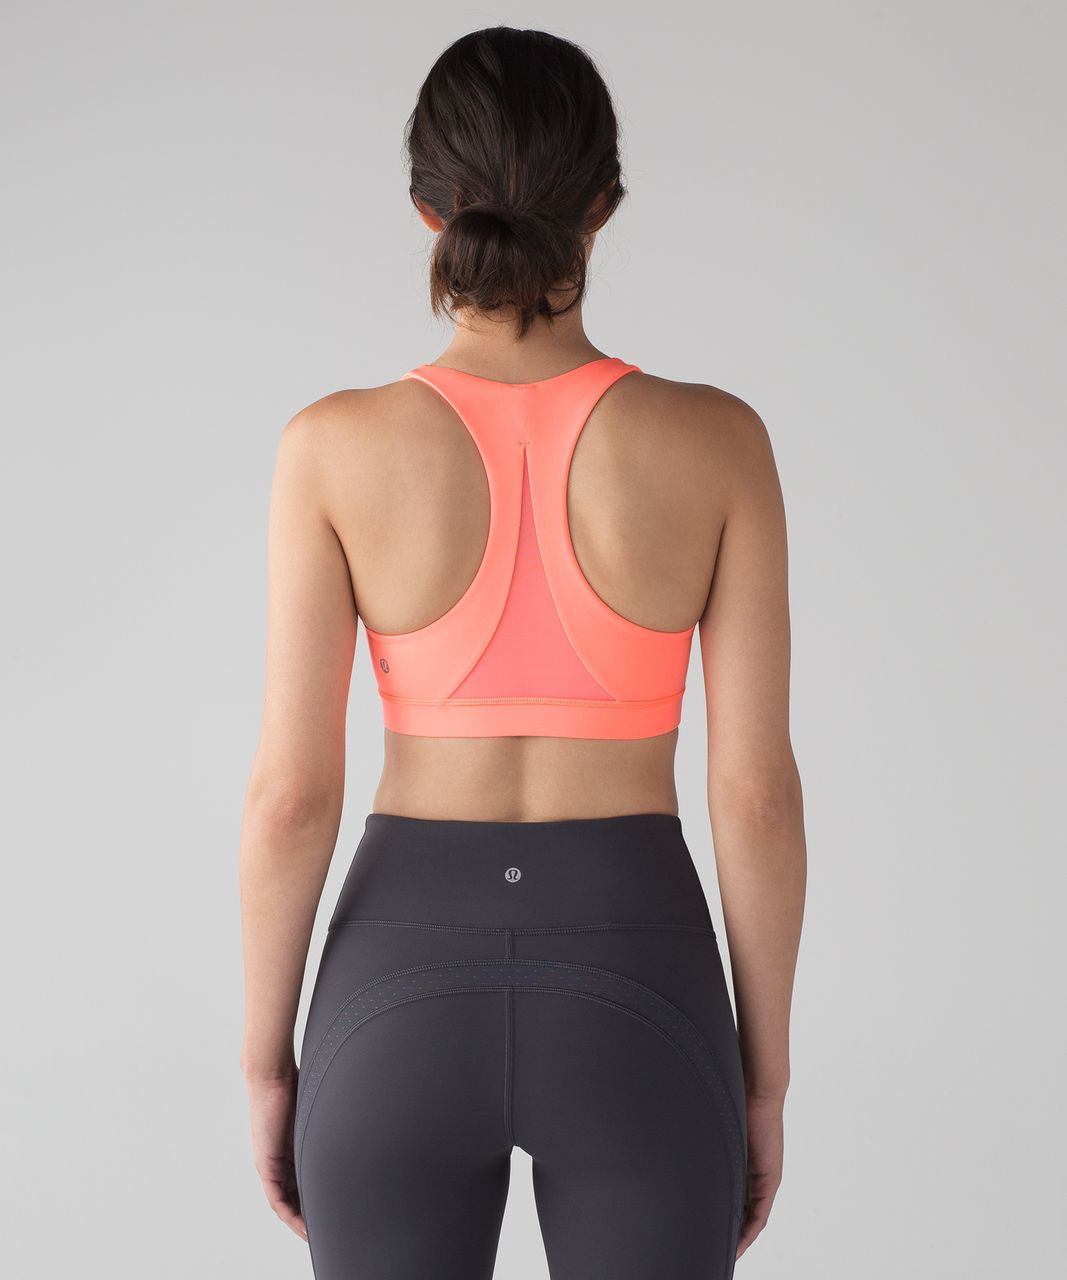 Lululemon Invigorate Bra - Pop Orange